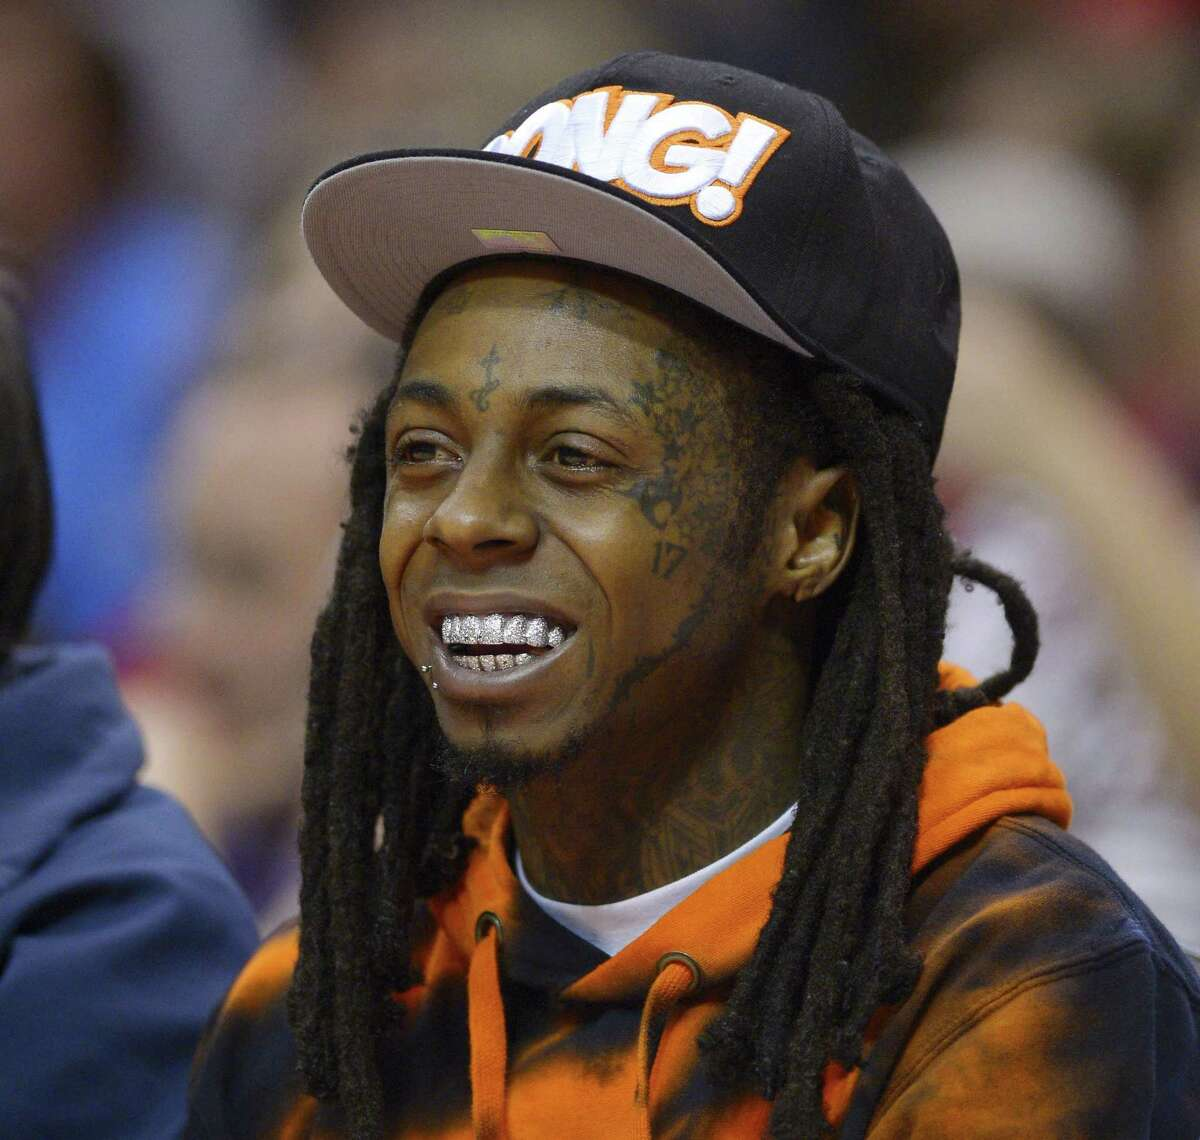 In this 2014 file photo, singer Lil Wayne watches the Los Angeles Clippers play the Houston Rockets during the first half of an NBA basketball game in Los Angeles.